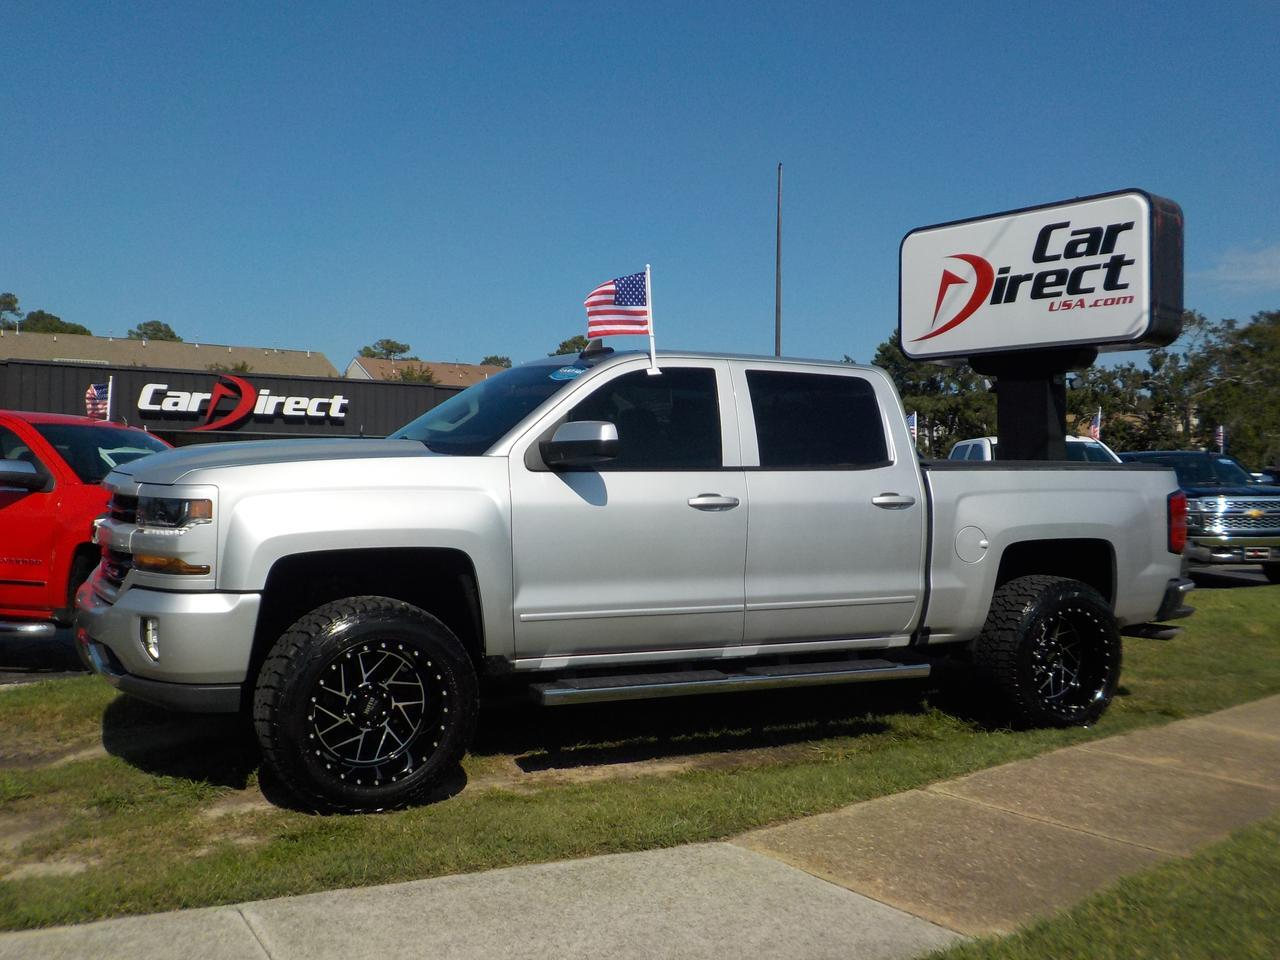 2016 CHEVROLET SILVERADO LT Z71 CREW CAB 4X4, RUNNING BOARDS, TOW PACKAGE, BLUETOOTH, EXCELLENT CONDITION, ONLY 18K MILES!! Virginia Beach VA